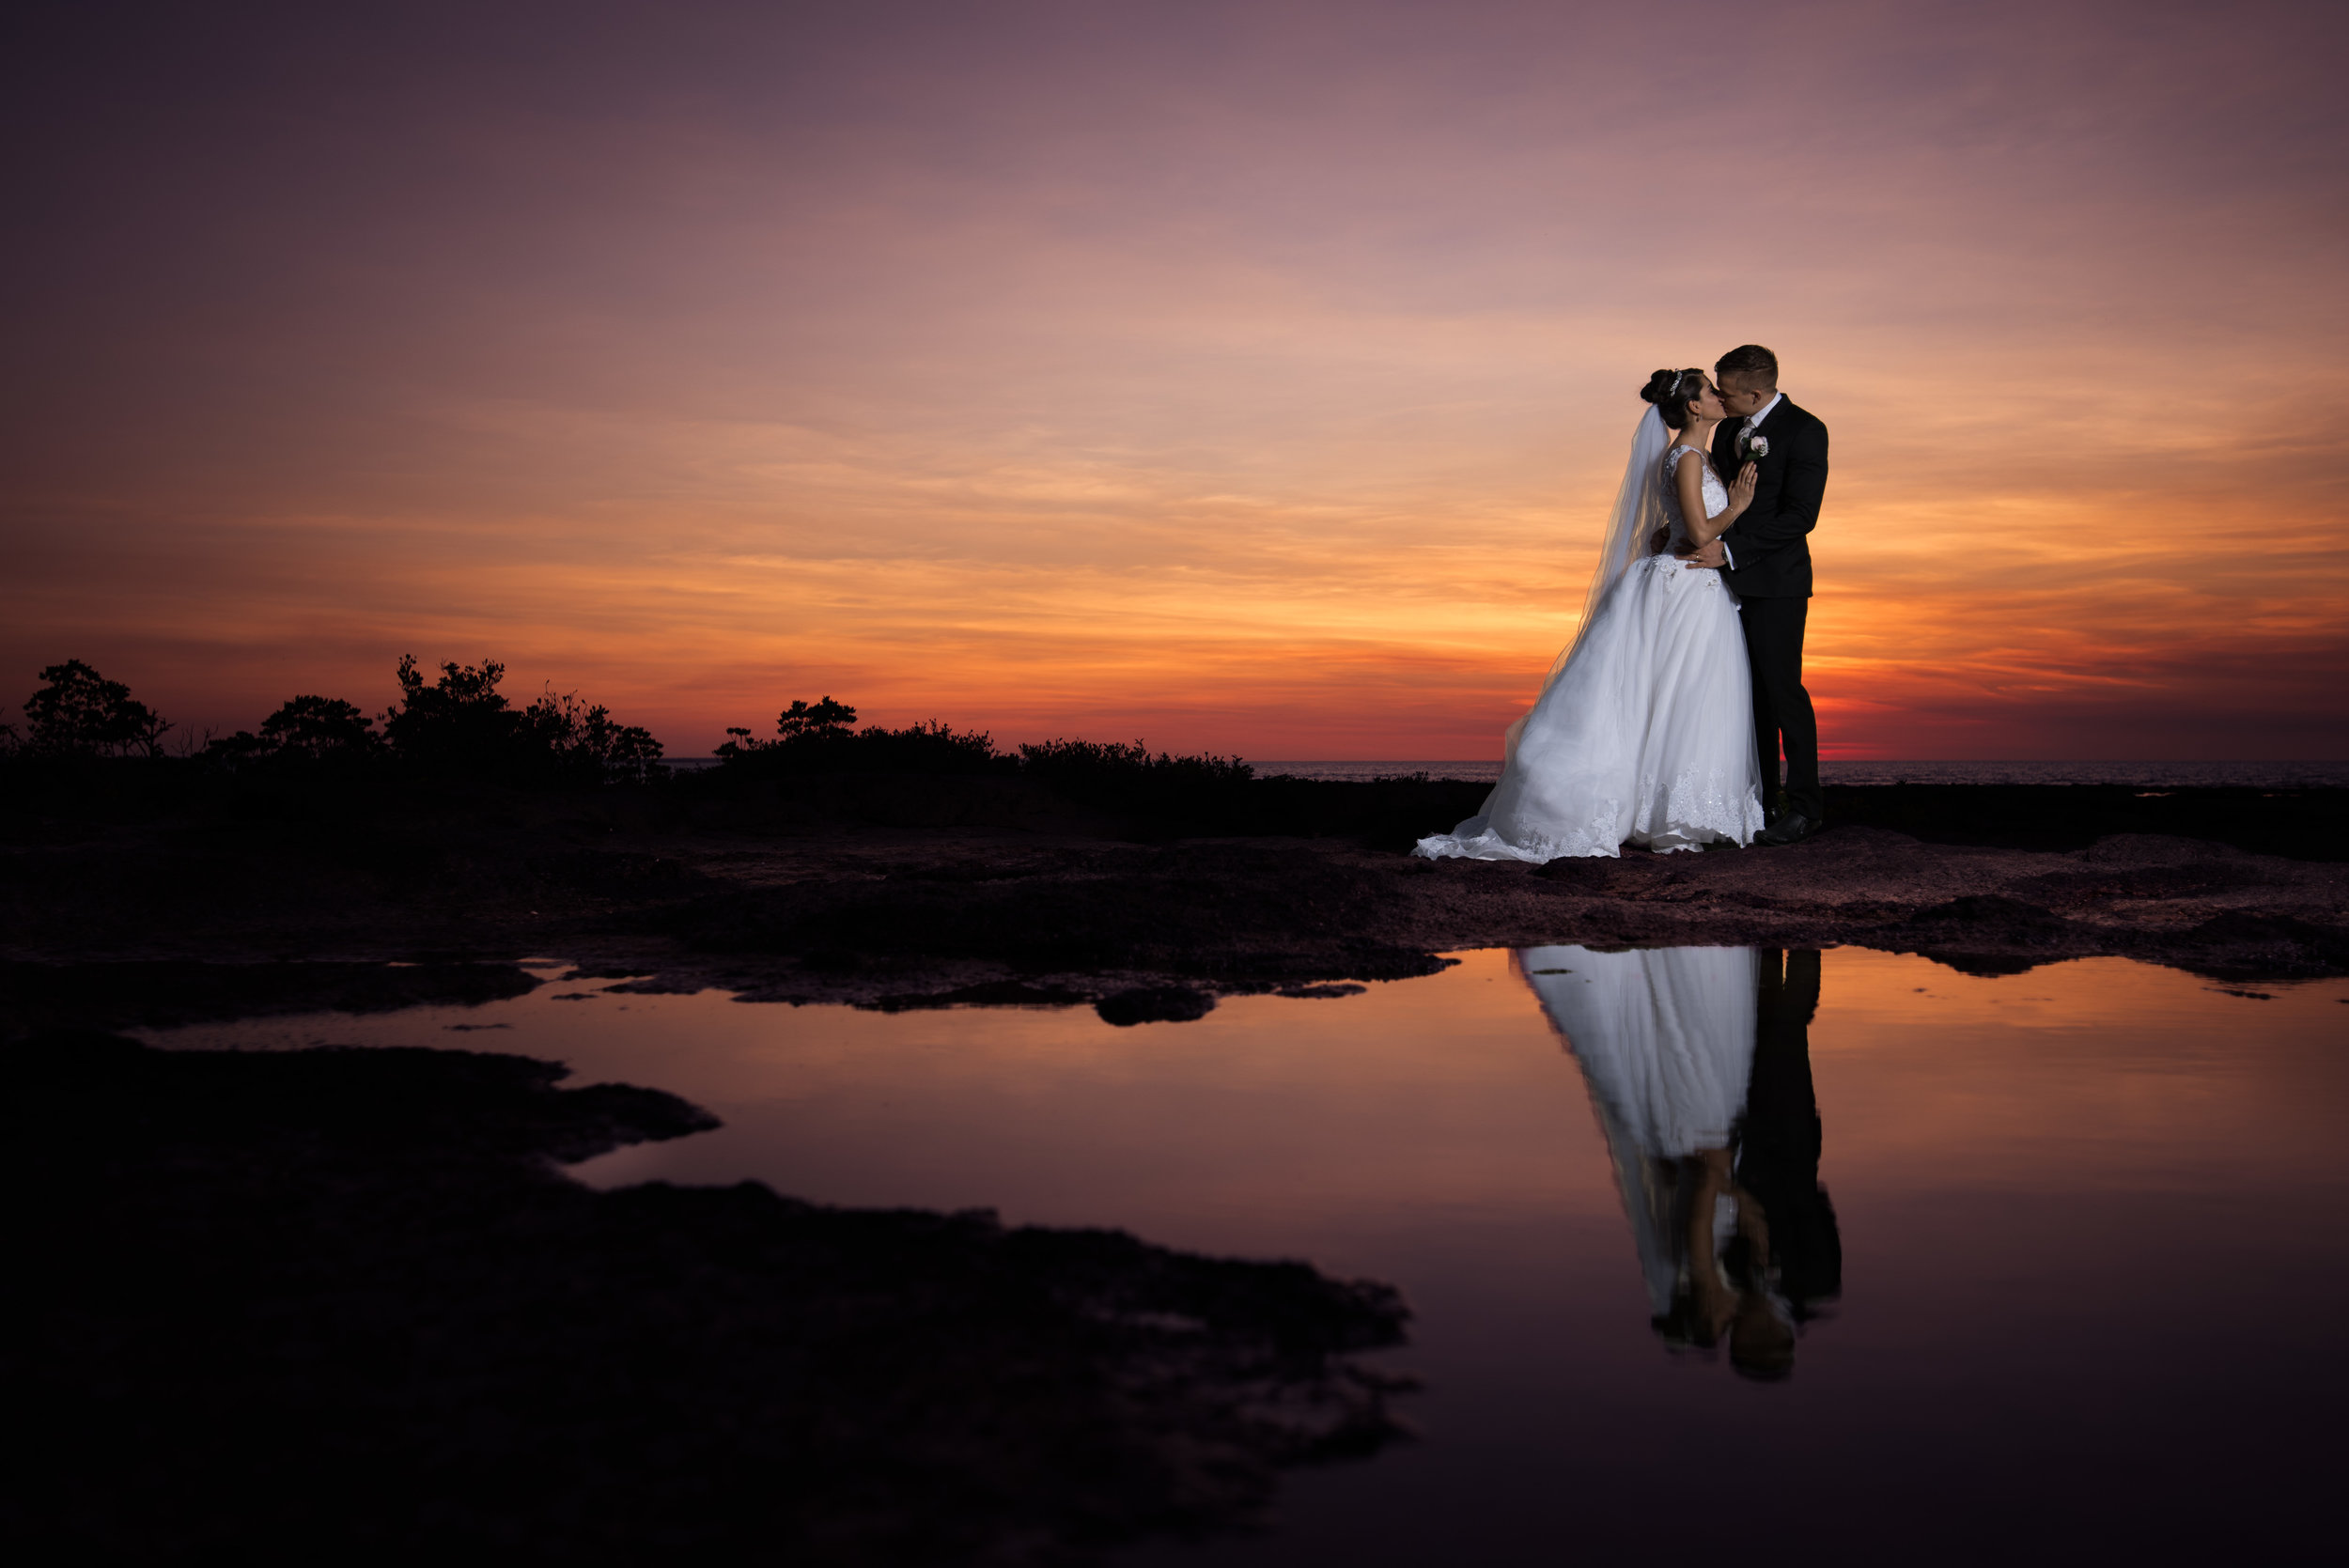 Navin produced amazing quality images and we experienced such a comfortable, enjoyable and relaxed shoot! Highly recommend him for your next event whether it be wedding, baptism, or party! Thanks Navin! - - E-Vass Thor